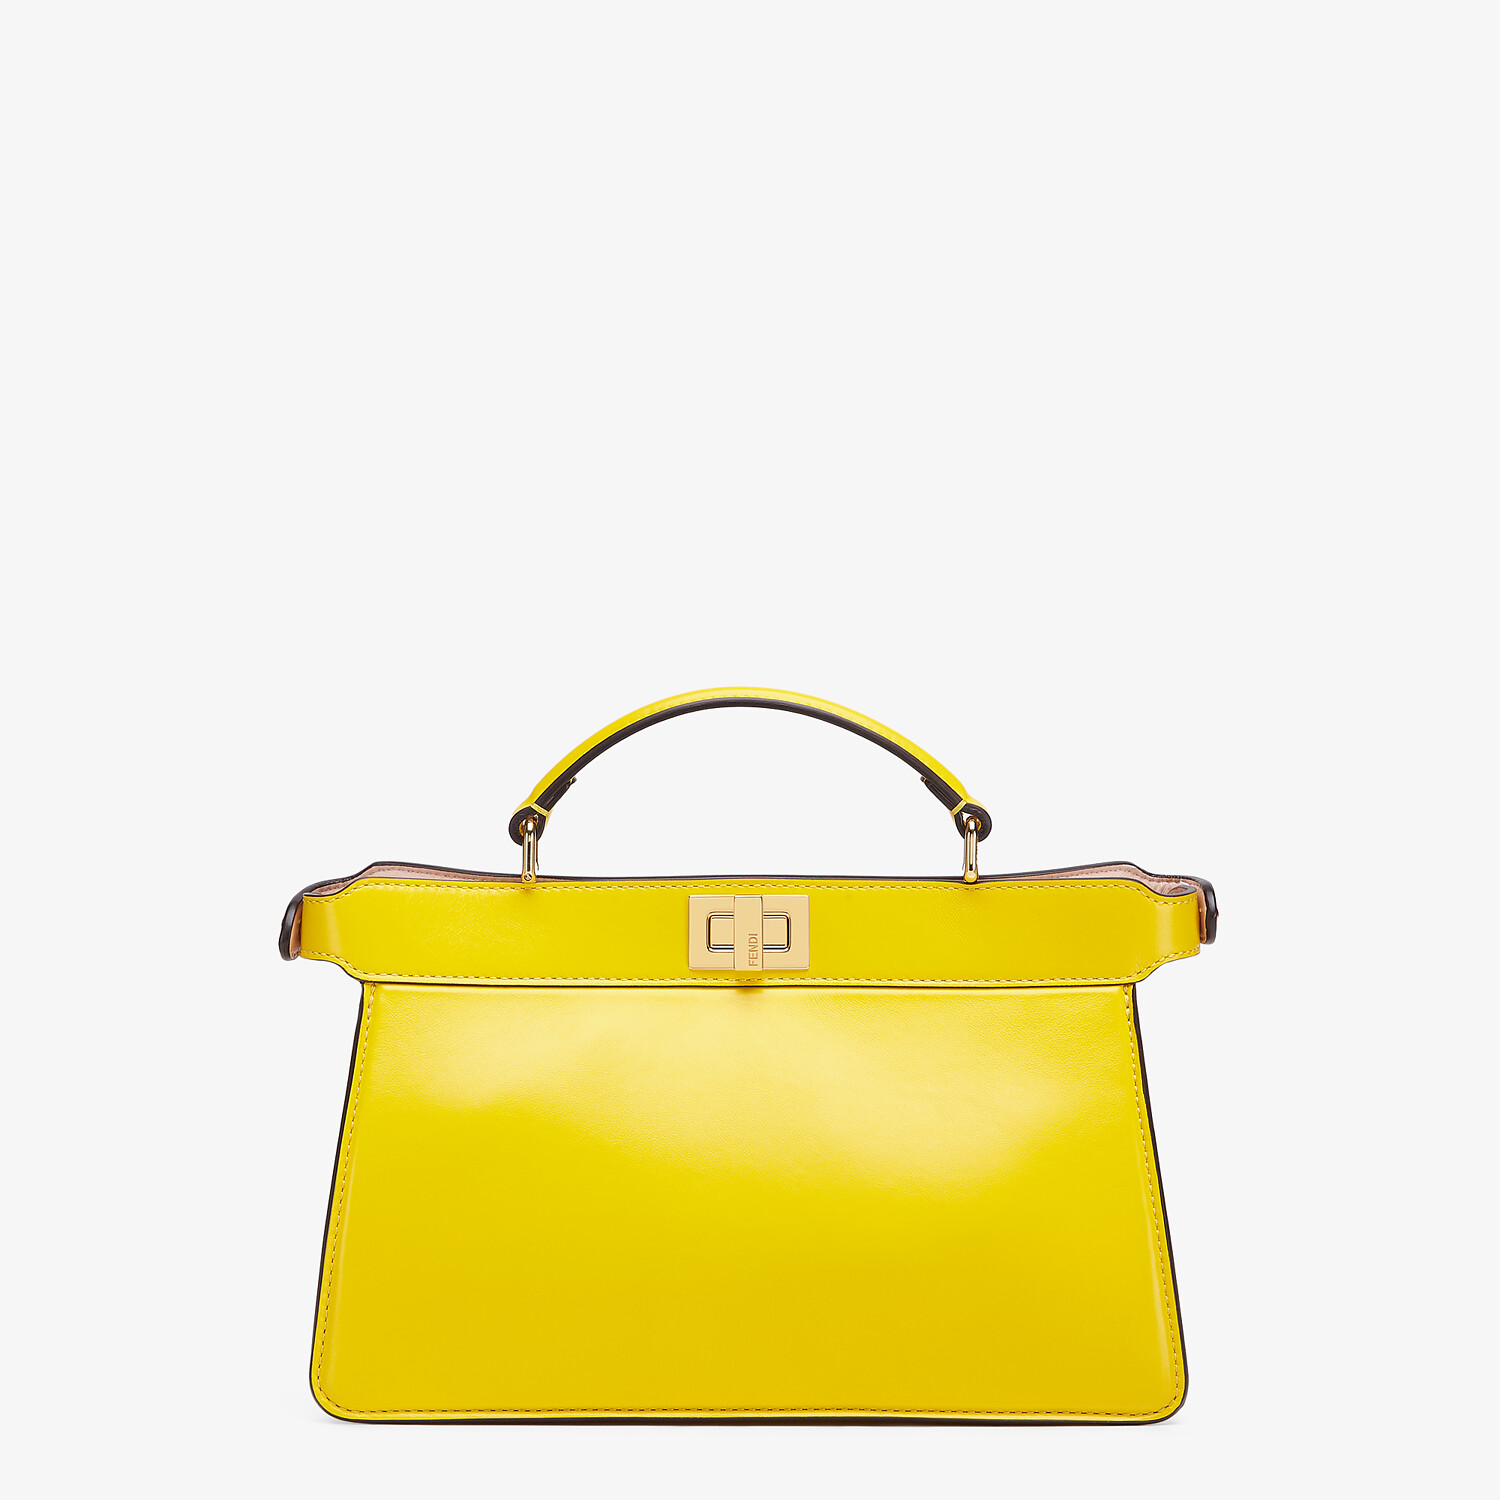 FENDI PEEKABOO ISEEU EAST-WEST - Yellow leather bag - view 3 detail